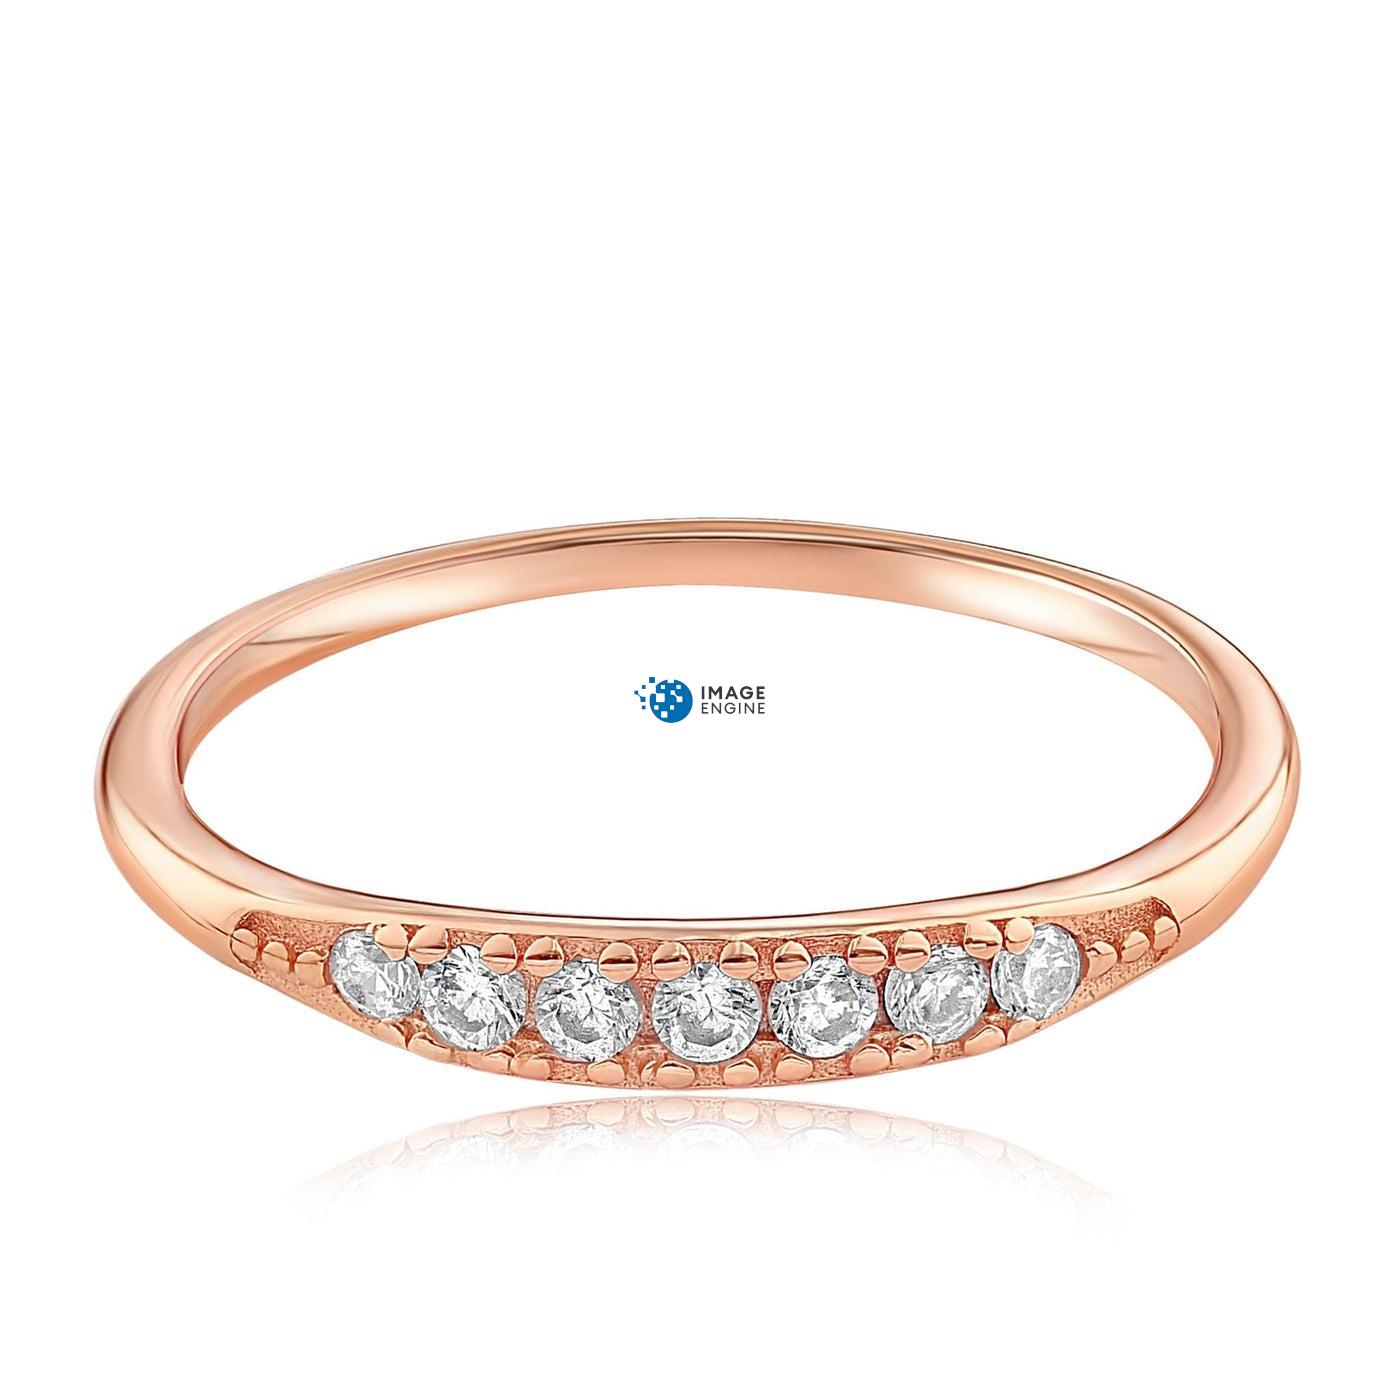 Kathleen Stack Ring - Front View Facing Down - 18K Rose Gold Vermeil